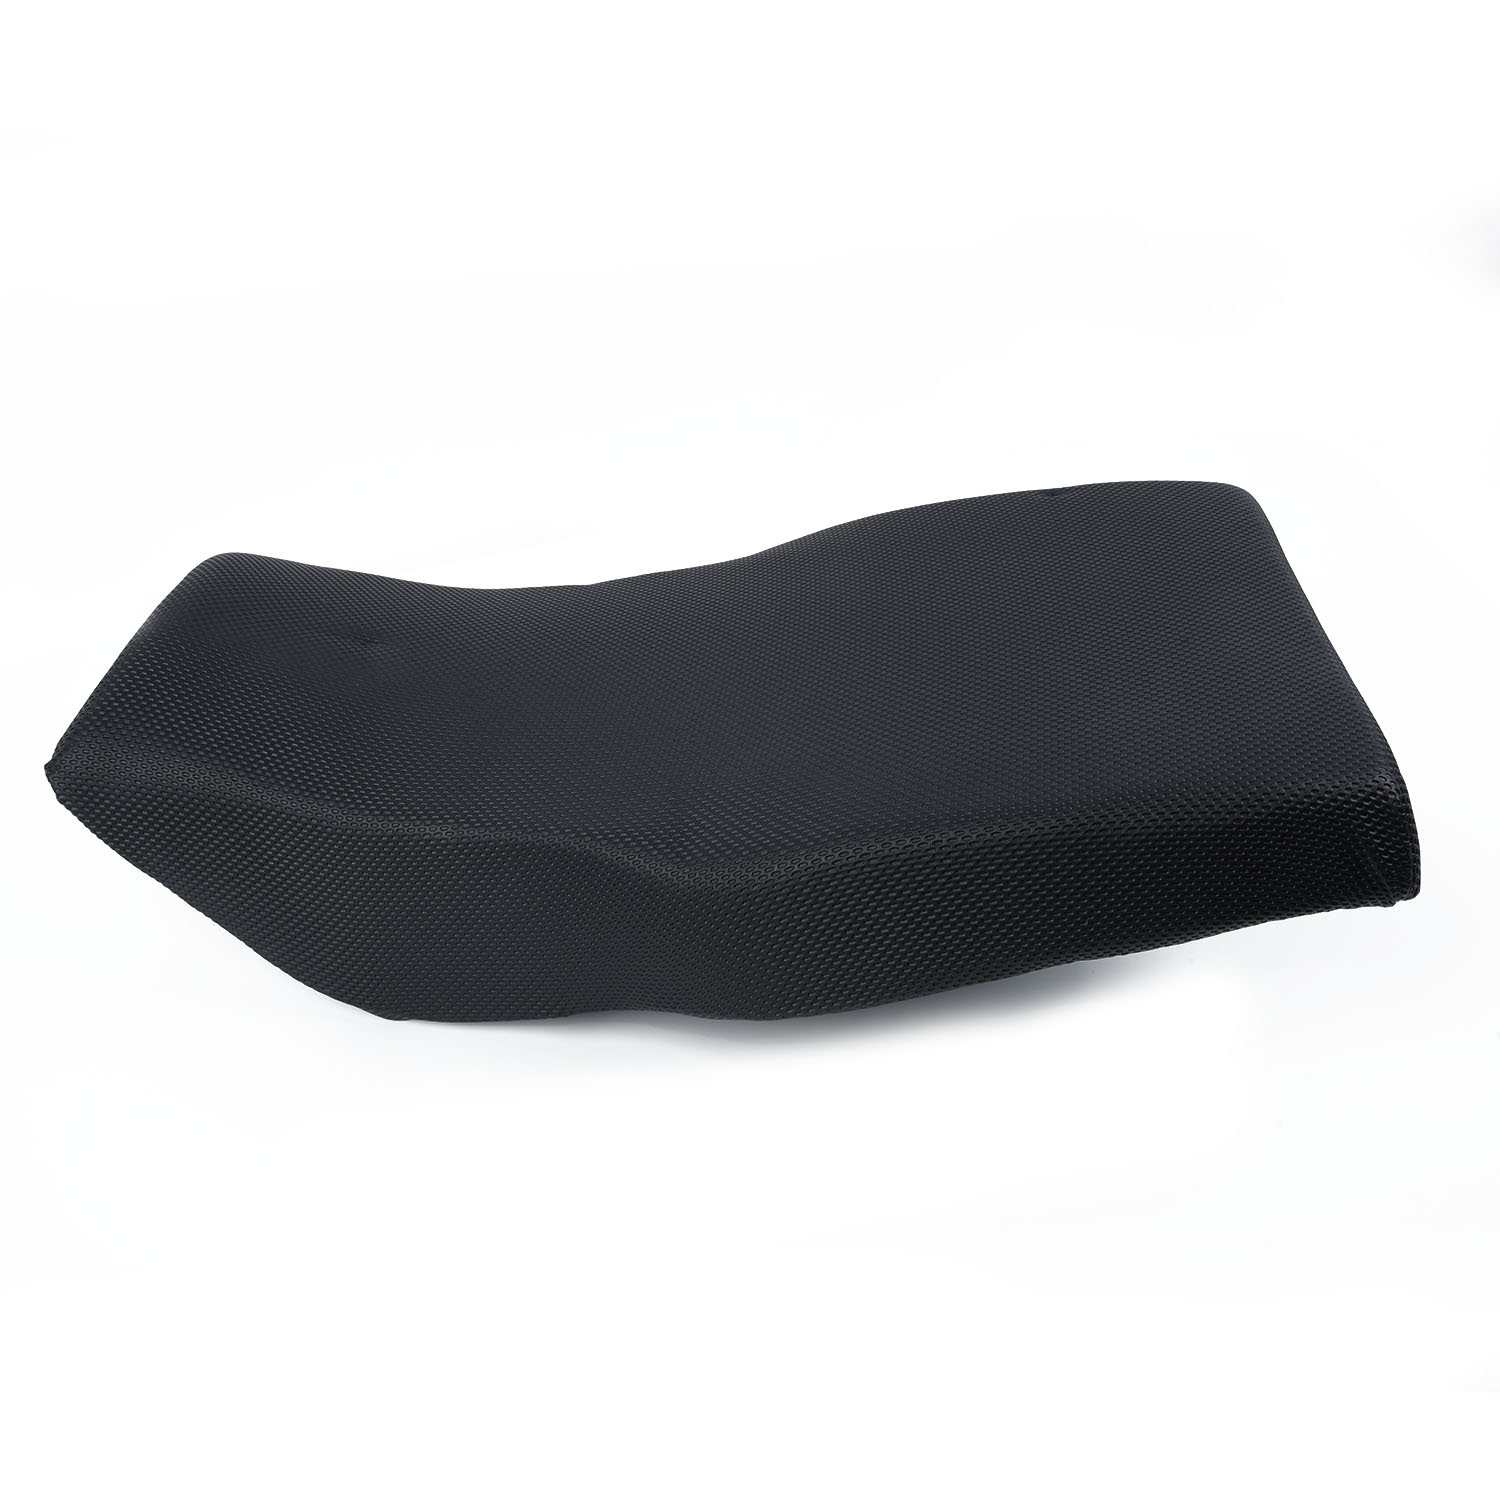 Image 4 - 460*270mm Black Seat Cushion High Quality Accessories for 50CC 70 90 110CC 150CC Chinese ATV SunL Eagle Seat Cushion Protector-in ATV Parts & Accessories from Automobiles & Motorcycles